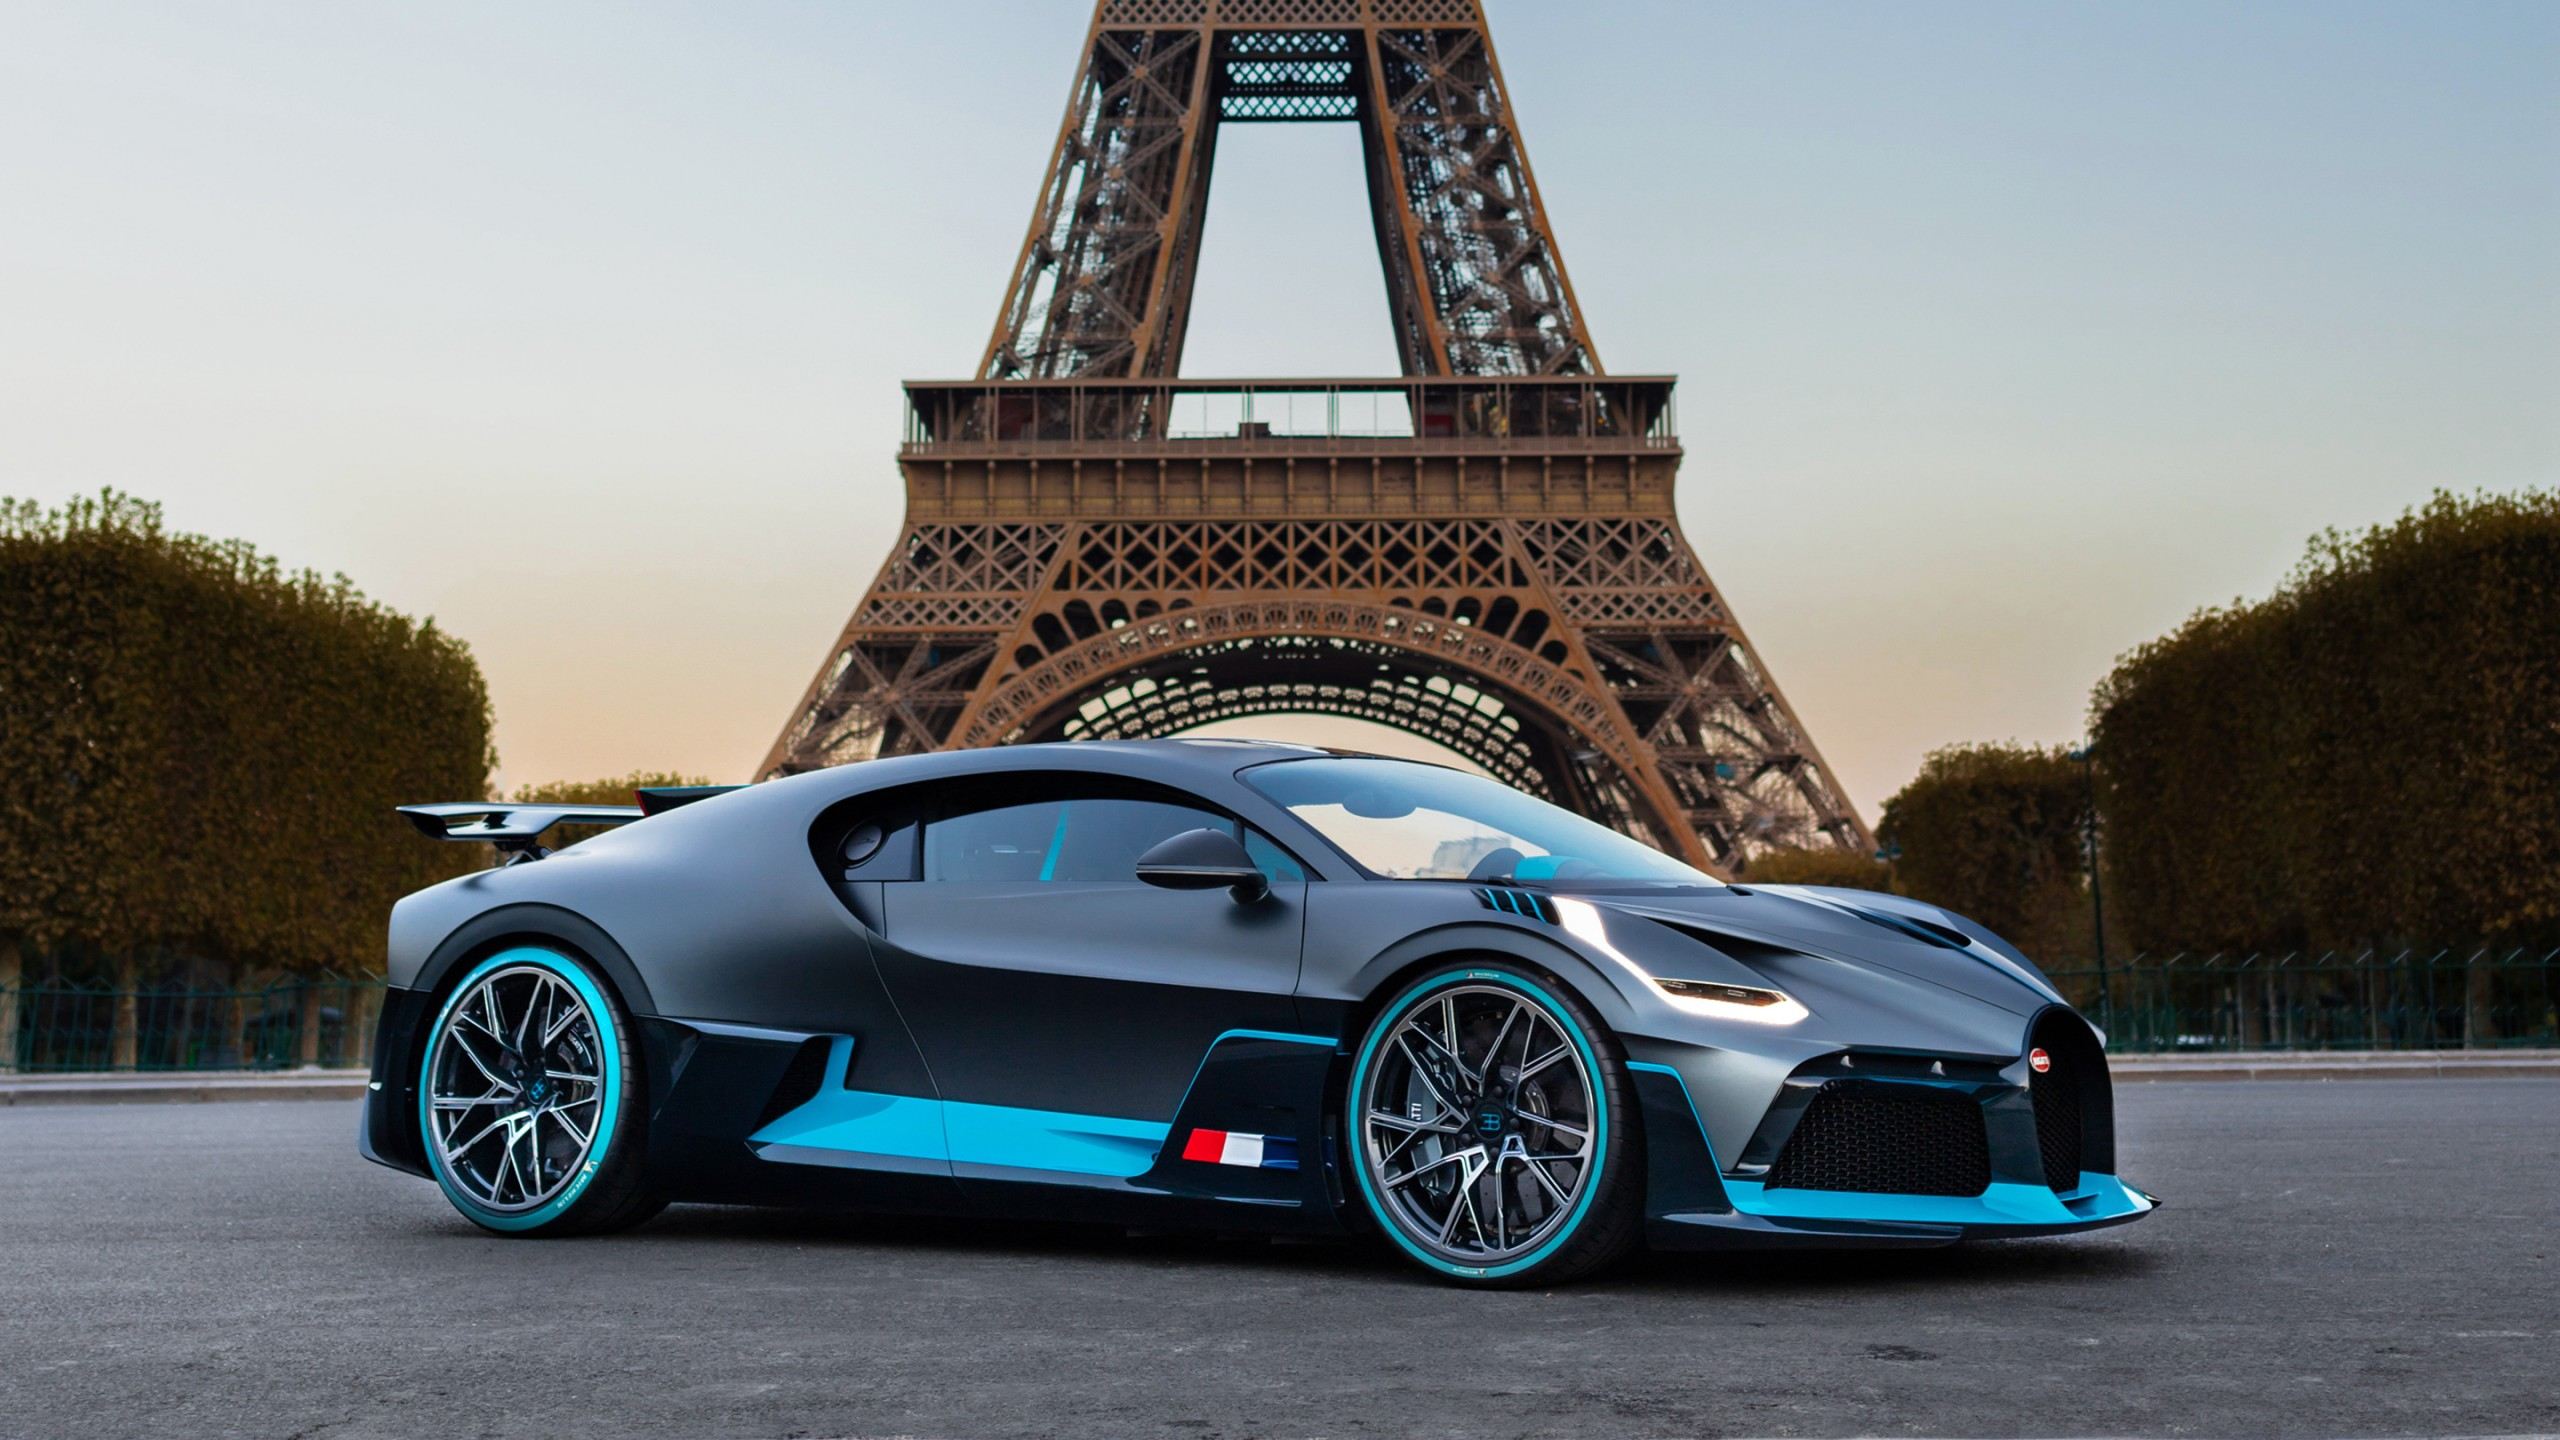 Hd Bmw Car Wallpapers 1920x1080 Bugatti Divo In Paris Wallpaper Hd Car Wallpapers Id